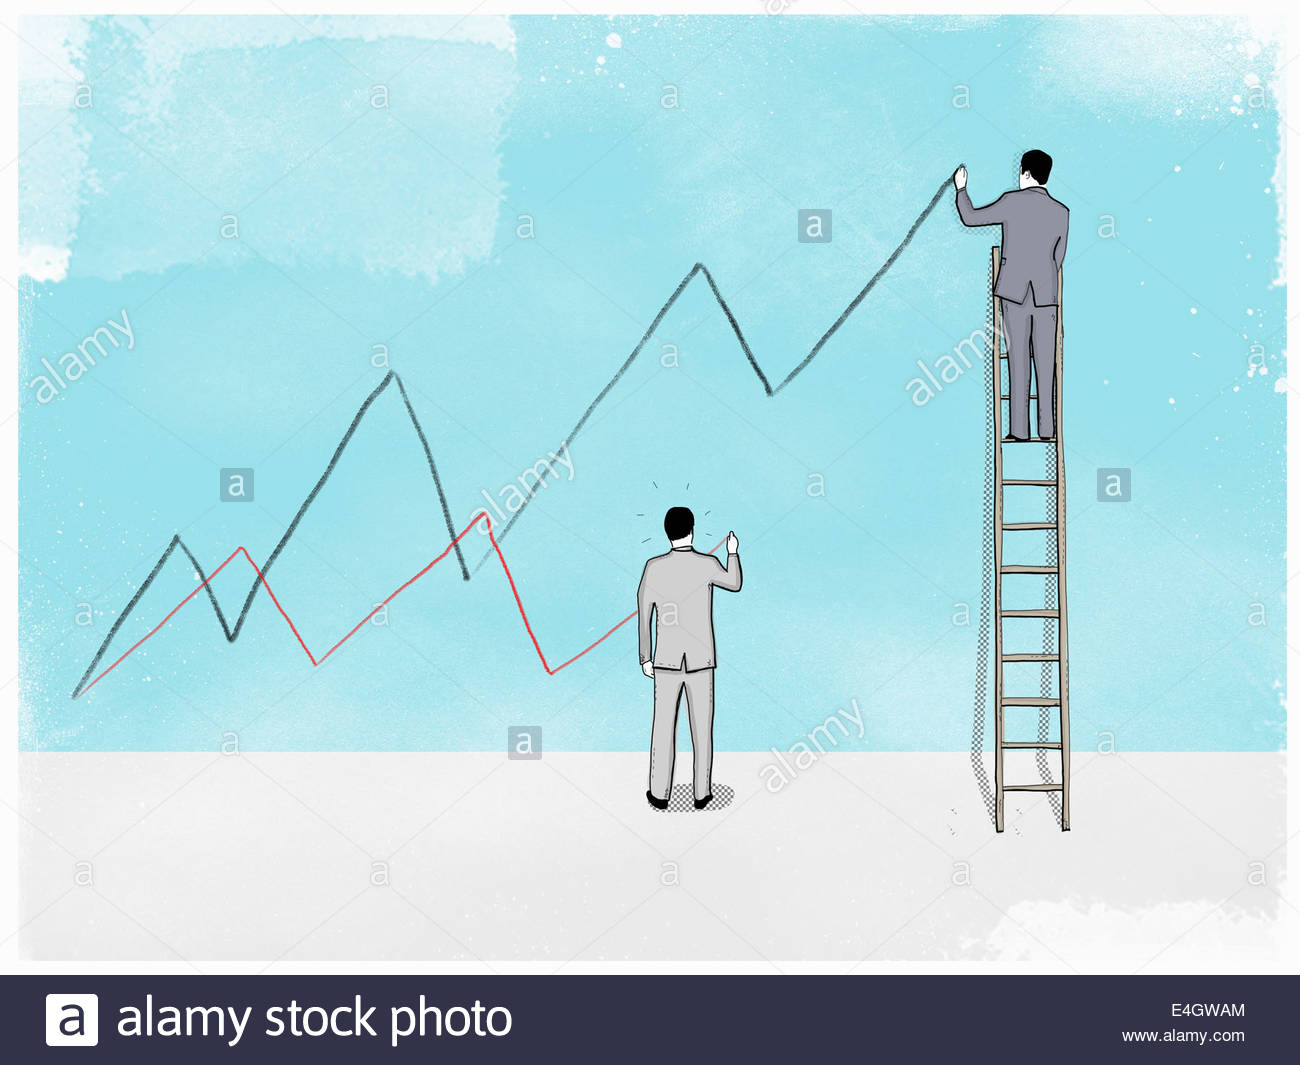 Businessmen on ladder and ground drawing high and low line graphs - Stock Image